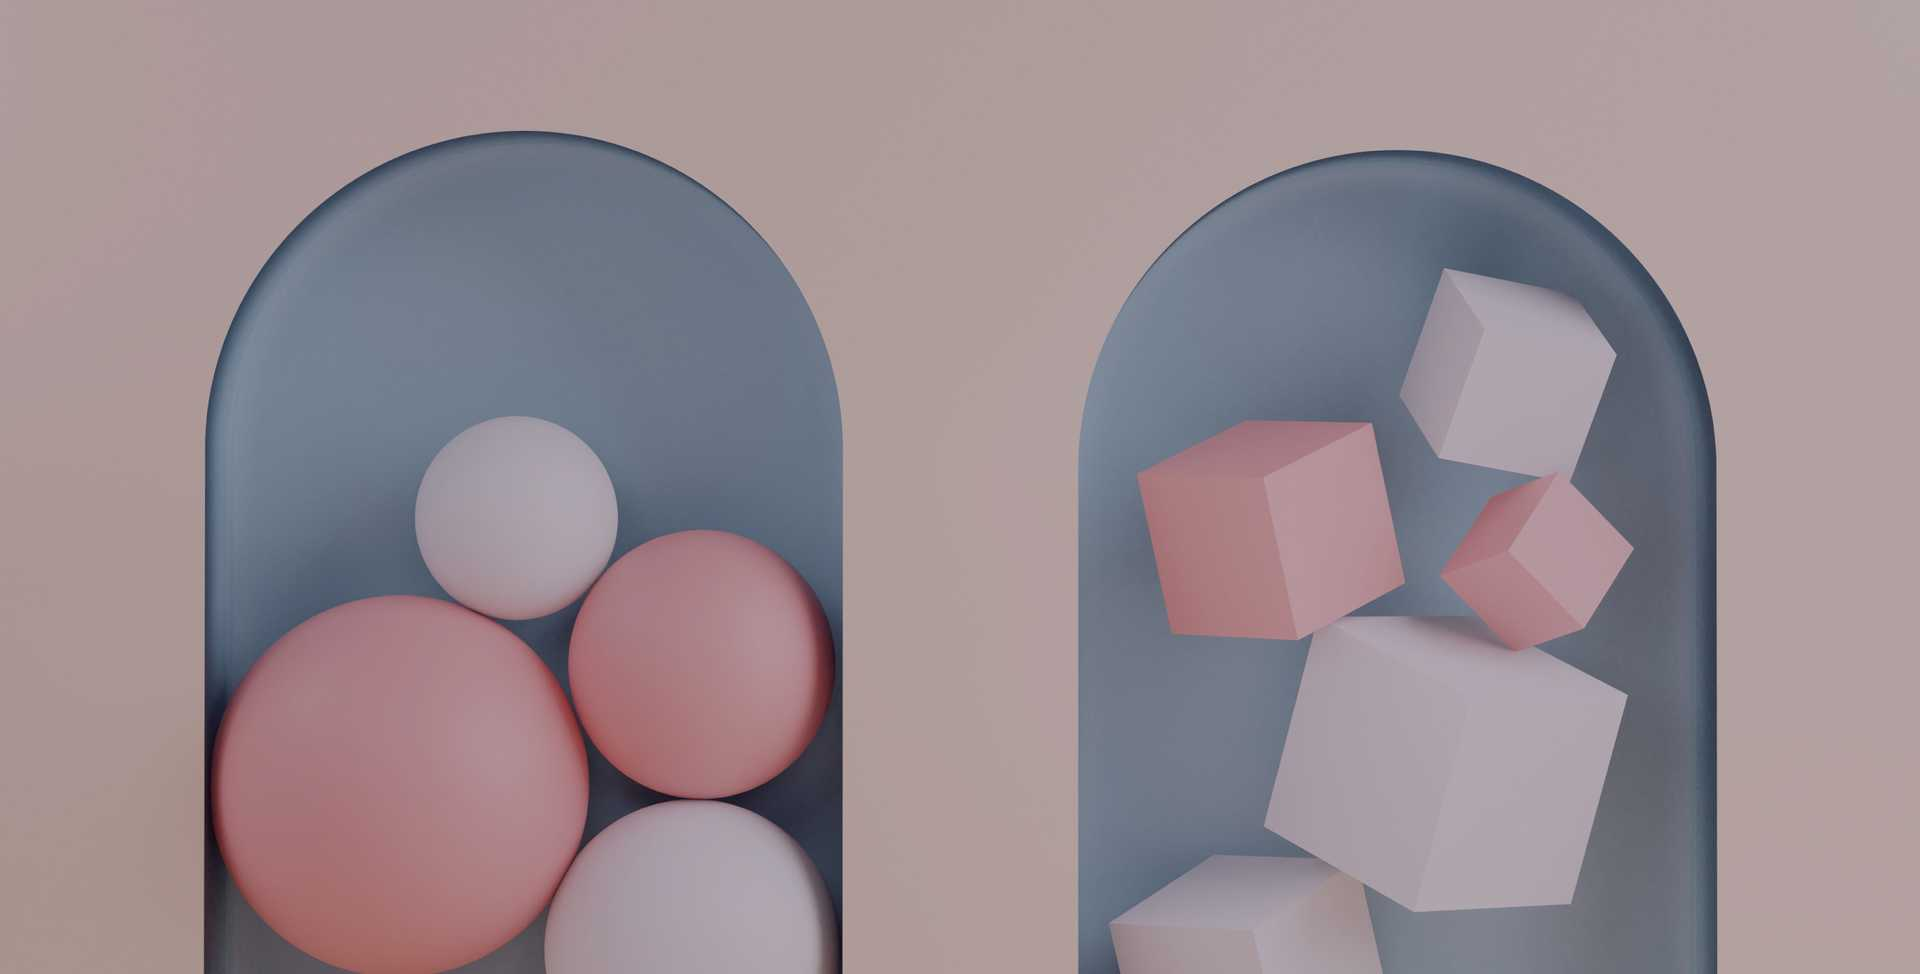 Abstract 3D rendering of two different compartments, one containing spheres and another containing cubes, representing different types of activities